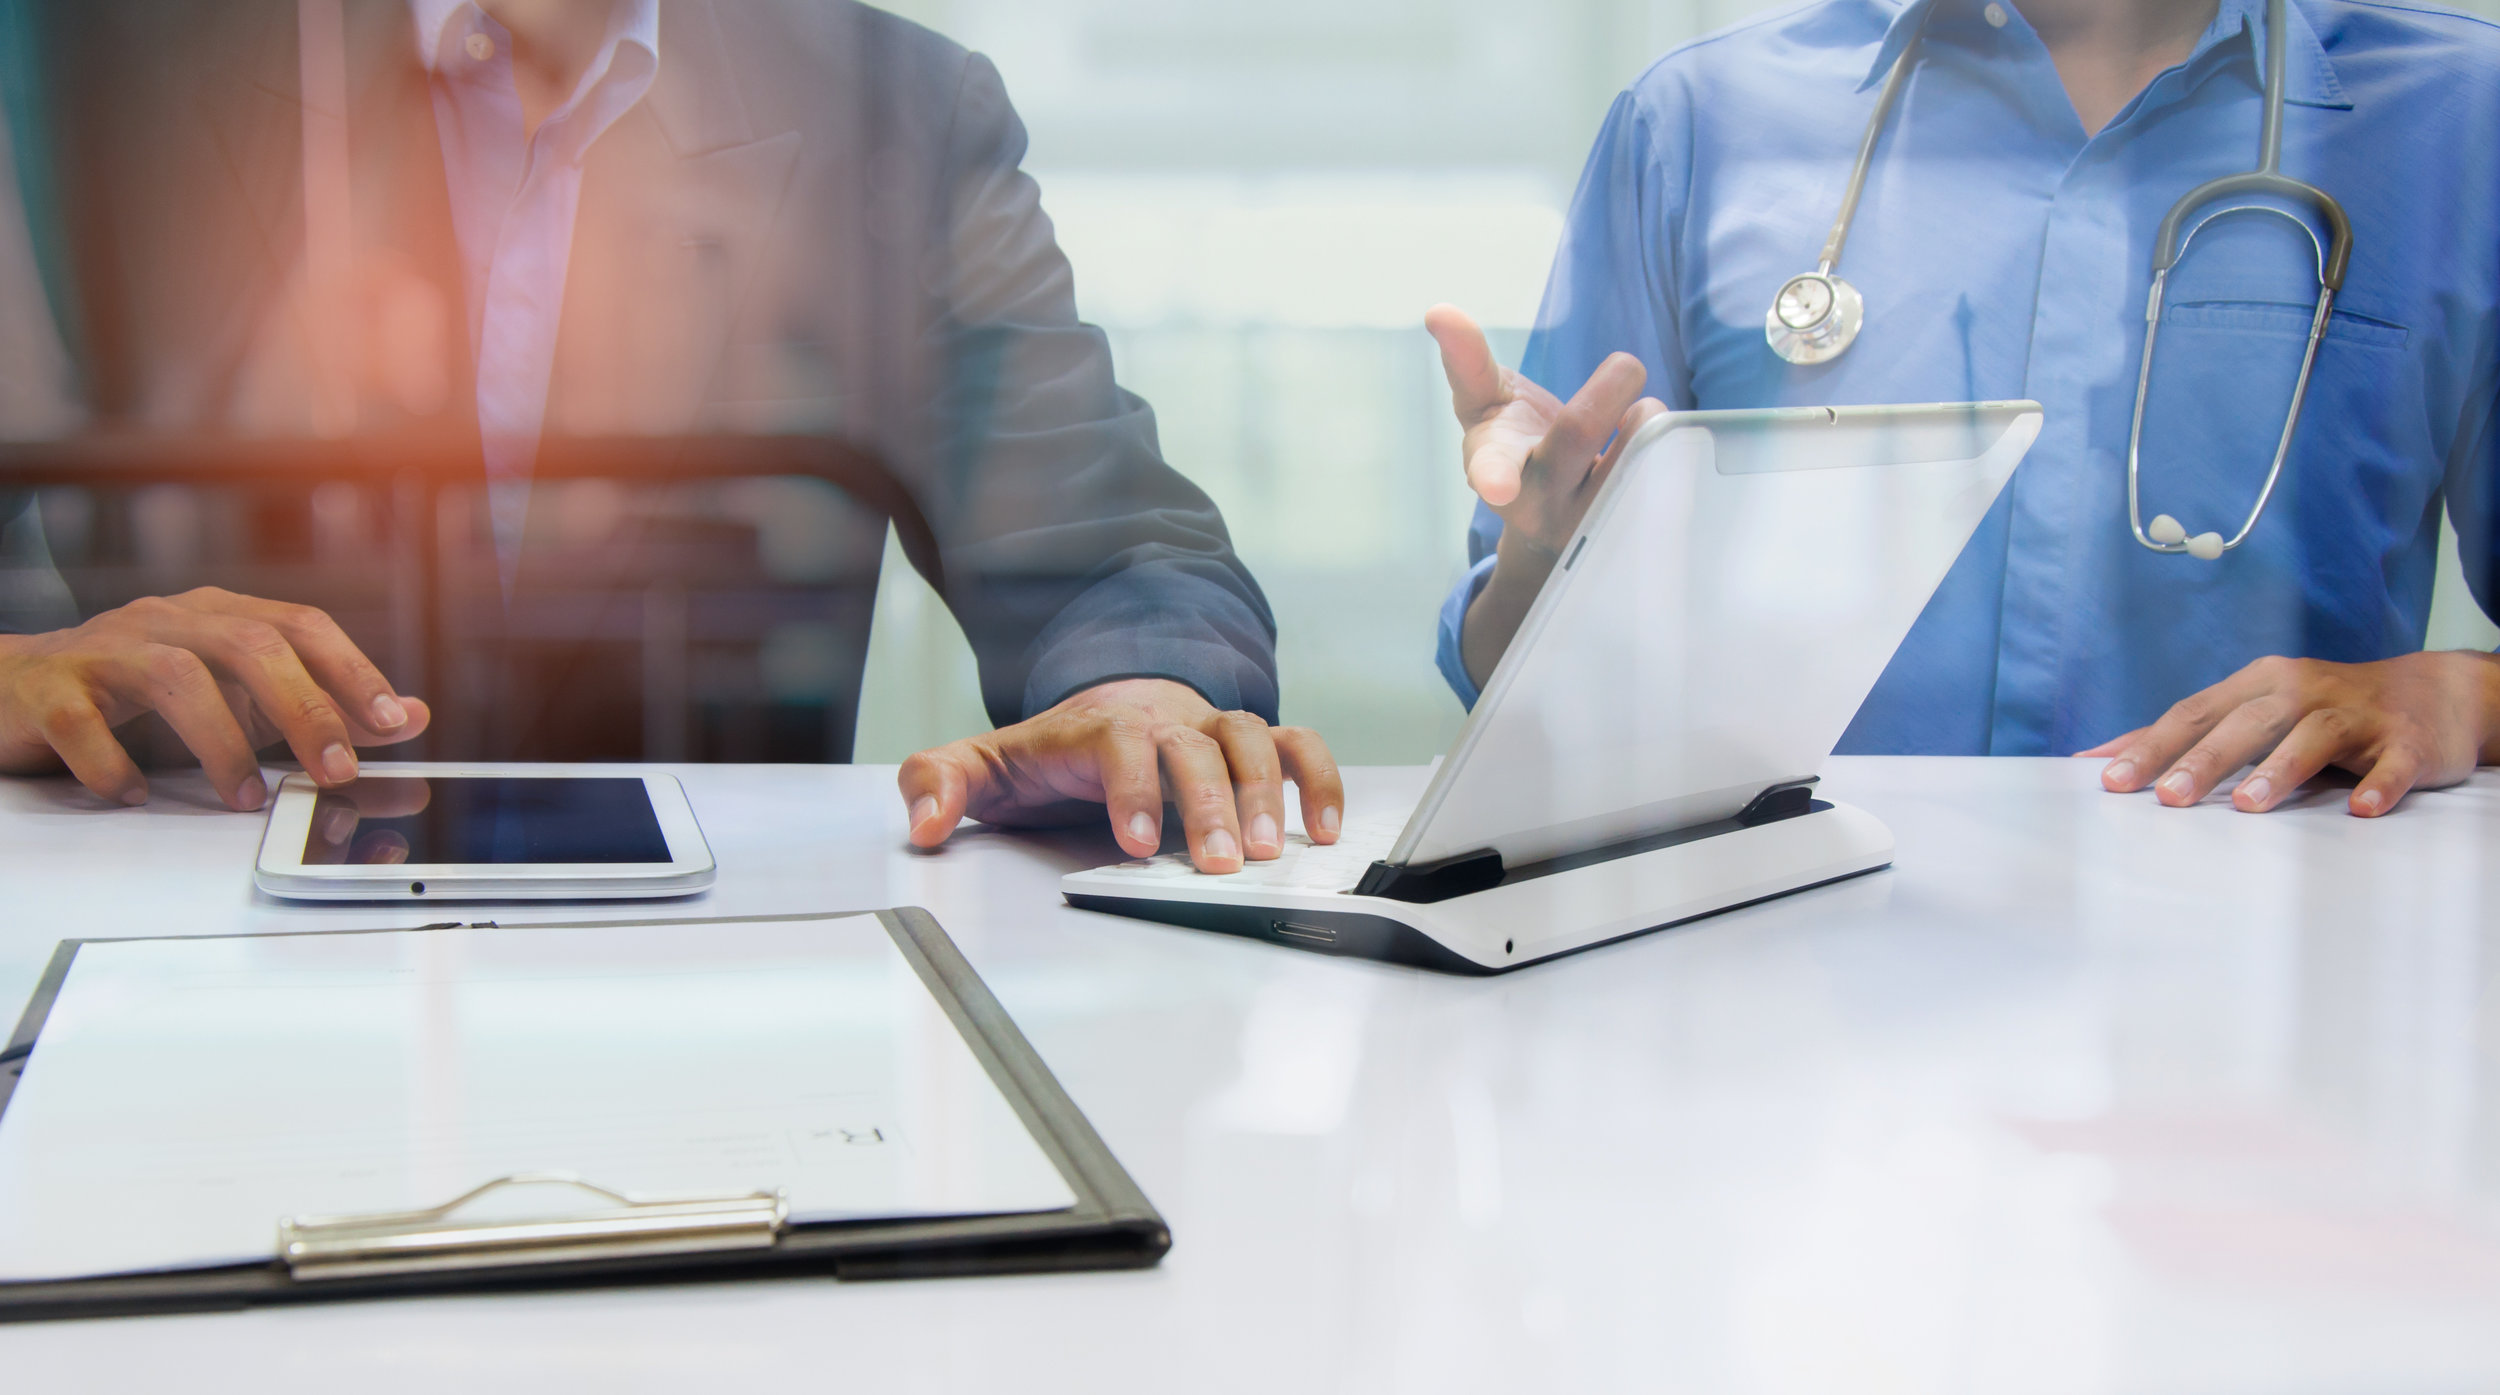 EMS-INTEGRATED PLATFORM - Our proprietary, EMS-integrated platform connects providers and EMS patients with non-life-threatening medical concerns in real-time at the touch of a button.